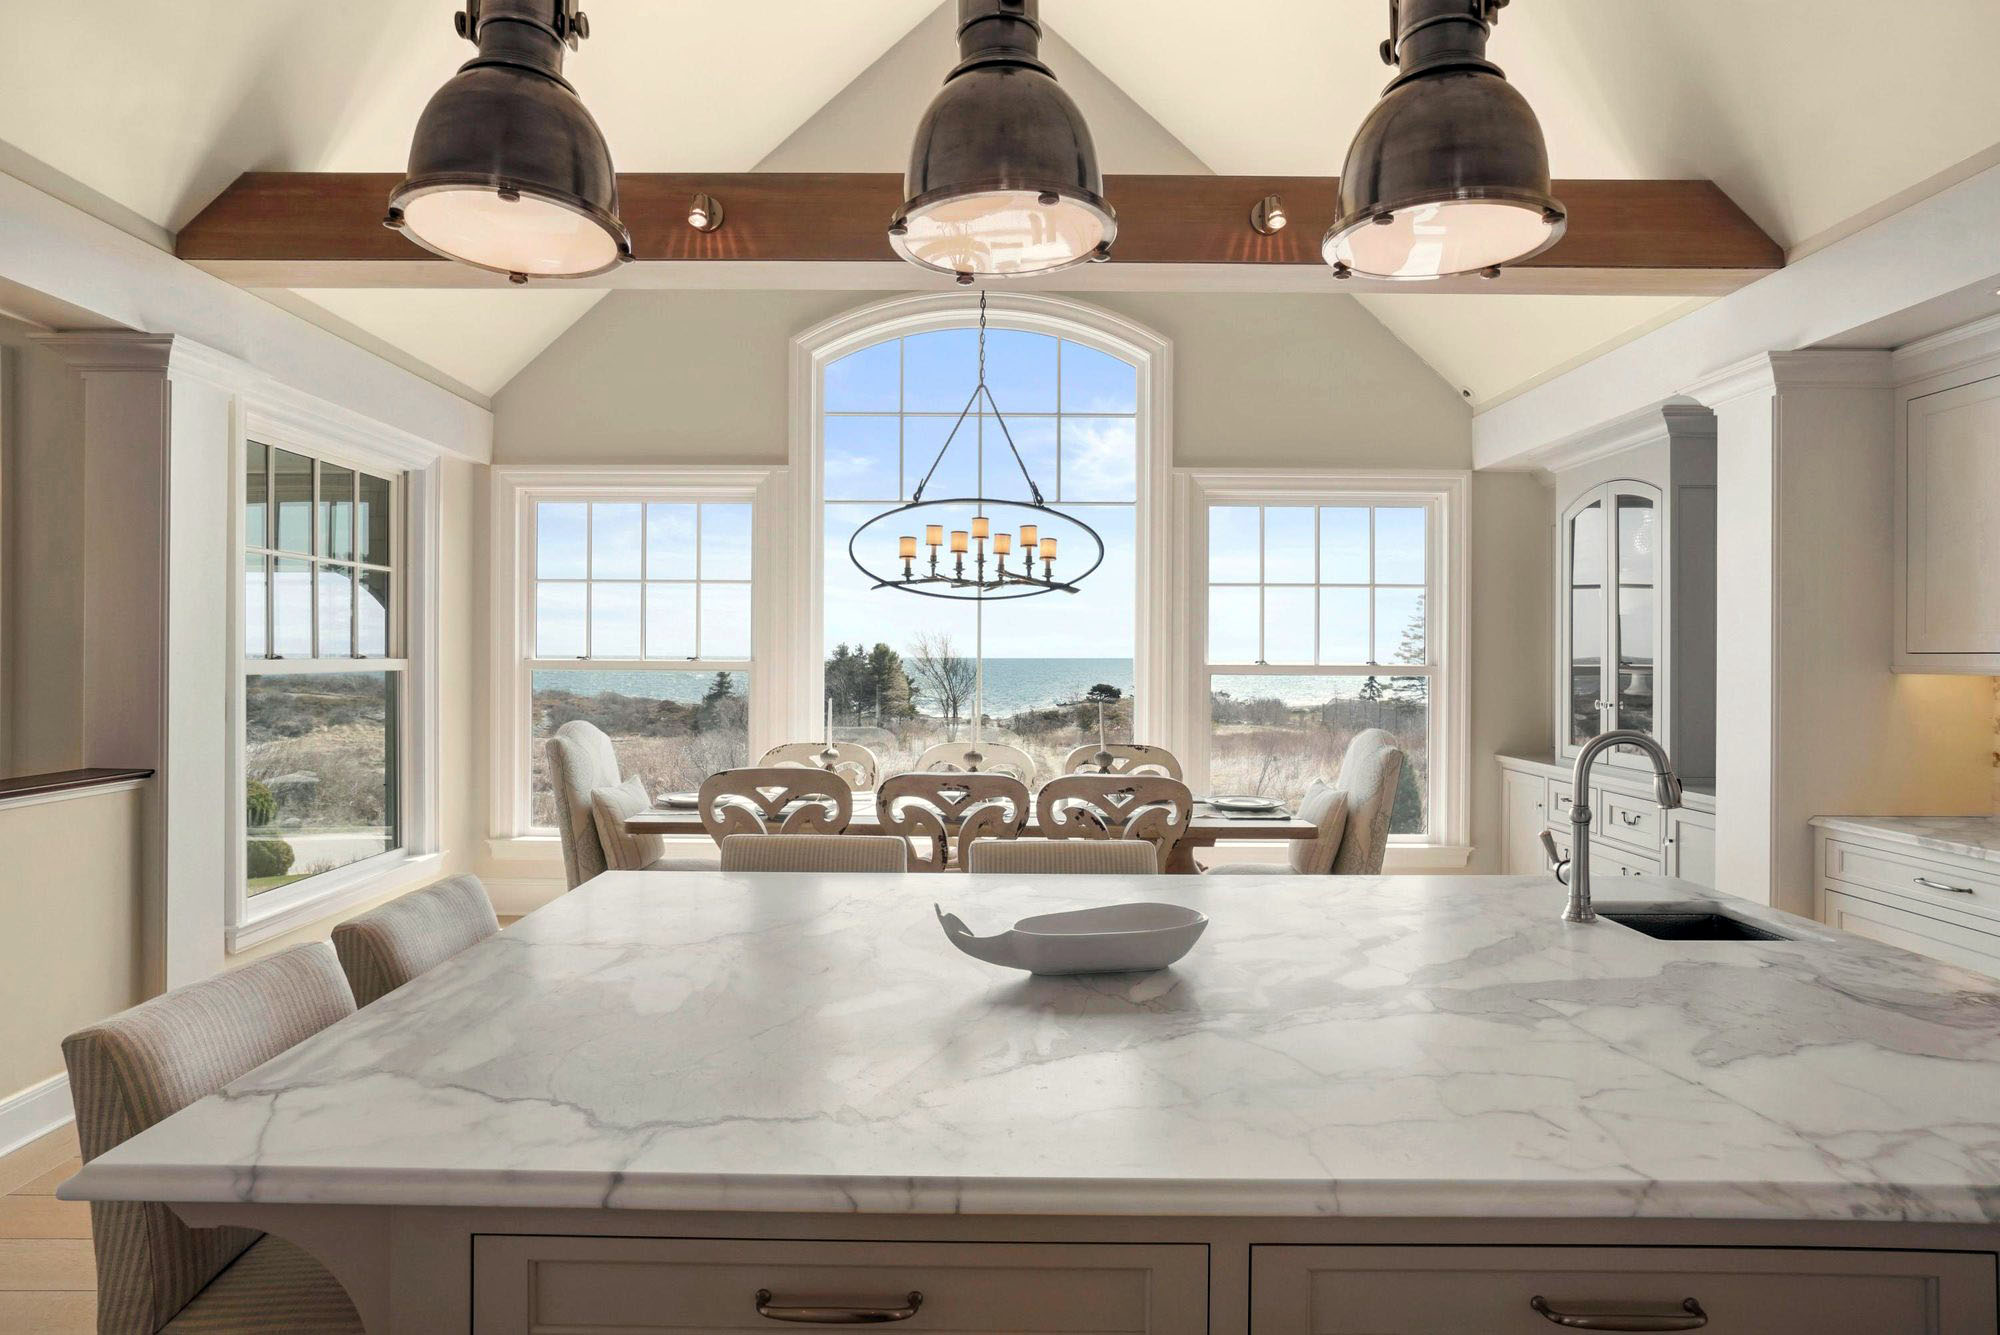 Beautiful traditionally styled kitchen with an ocean view. Cream colored cabinetry with marble countertops, exposed wood beams and industrial pendant lighting.